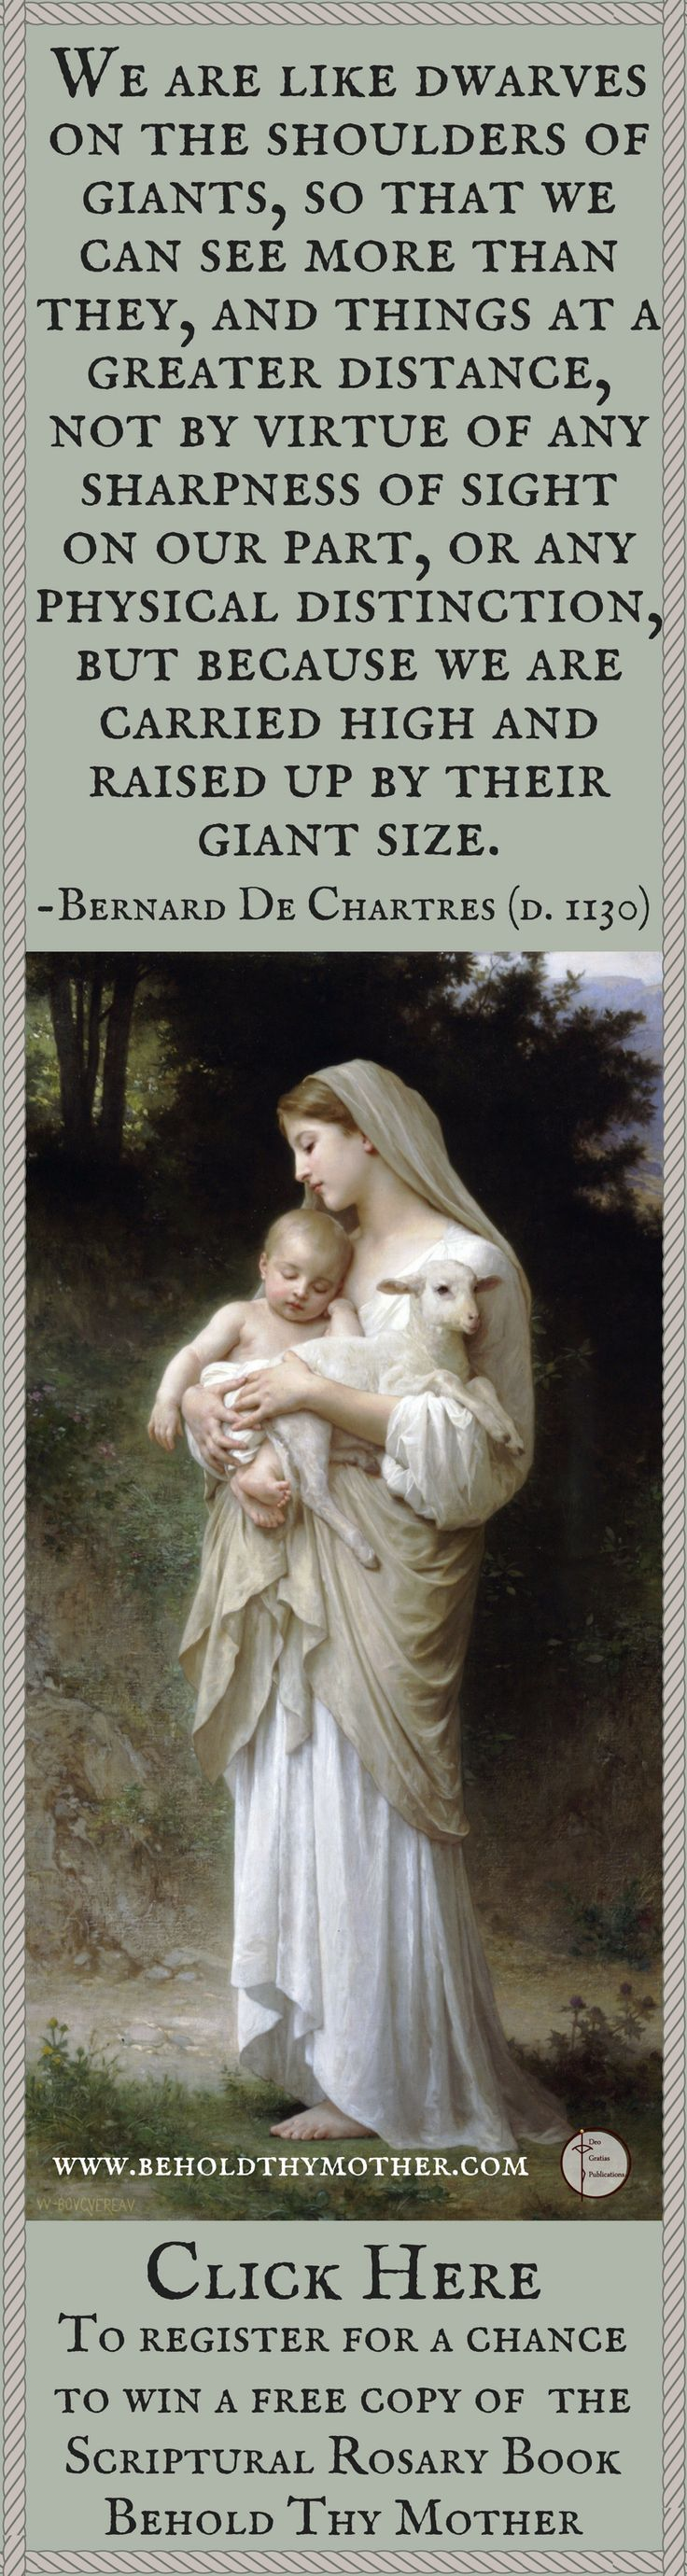 """Register for a chance to win a free copy of the Scriptural Rosary Book """"Behold Thy Mother."""""""